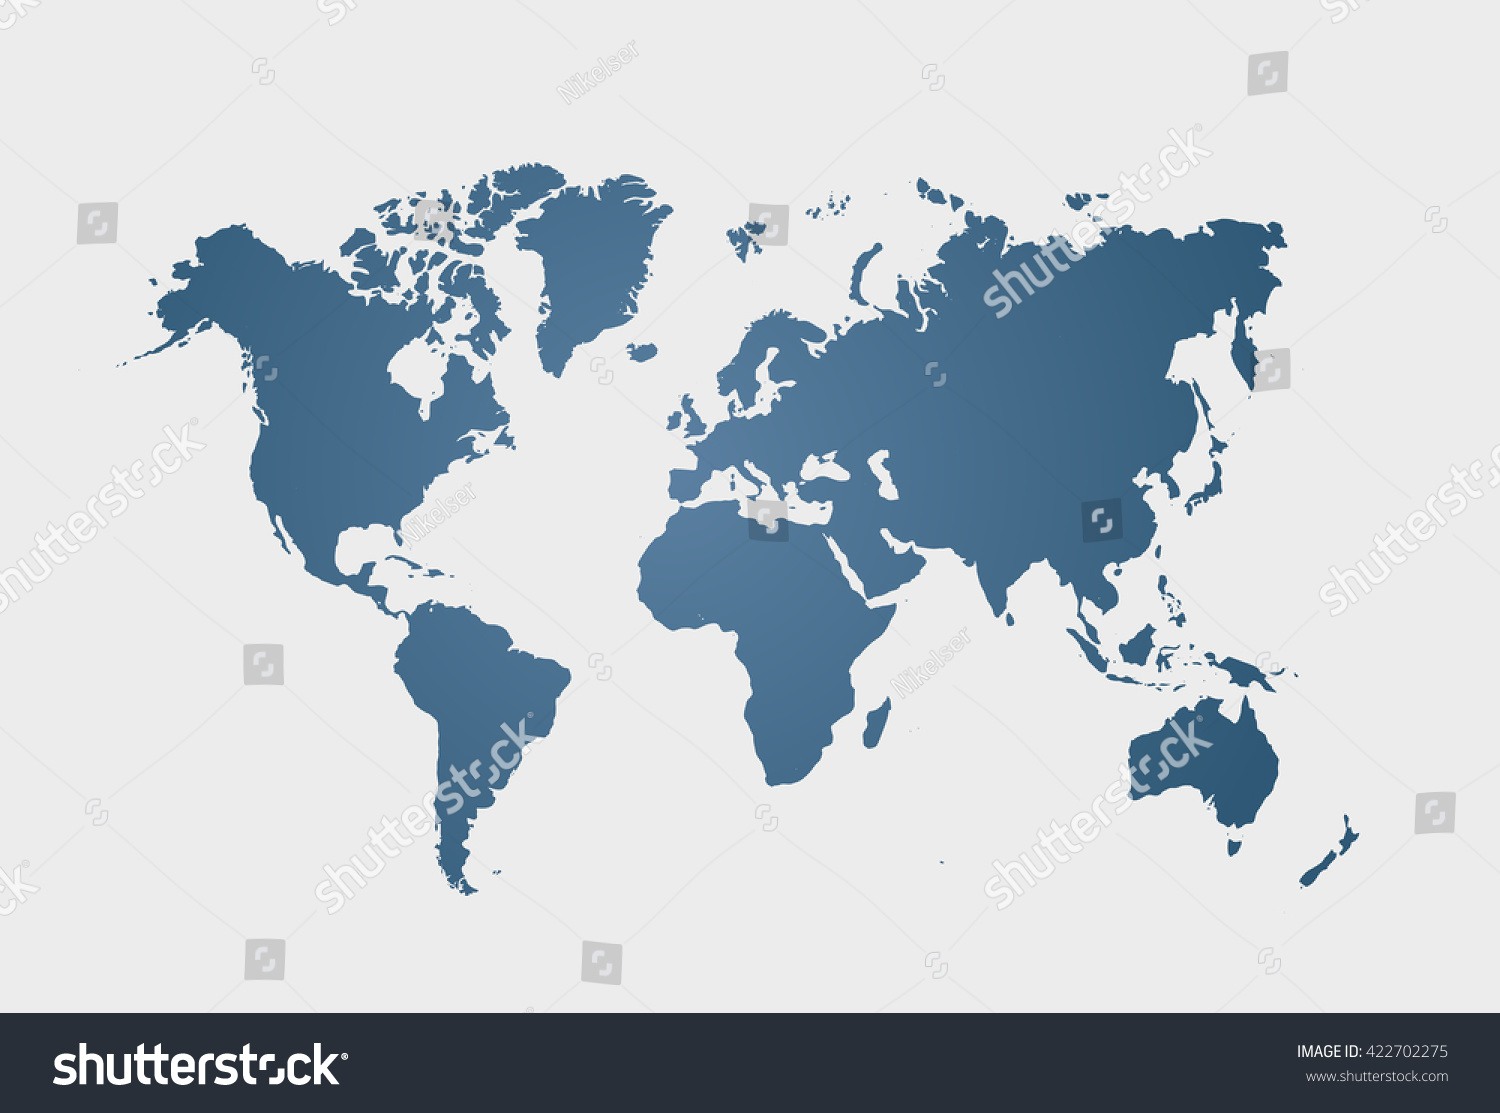 Blue similar world map blank world vectores en stock 422702275 blue similar world map blank world clean flat map vector illustration eps 10 gumiabroncs Gallery